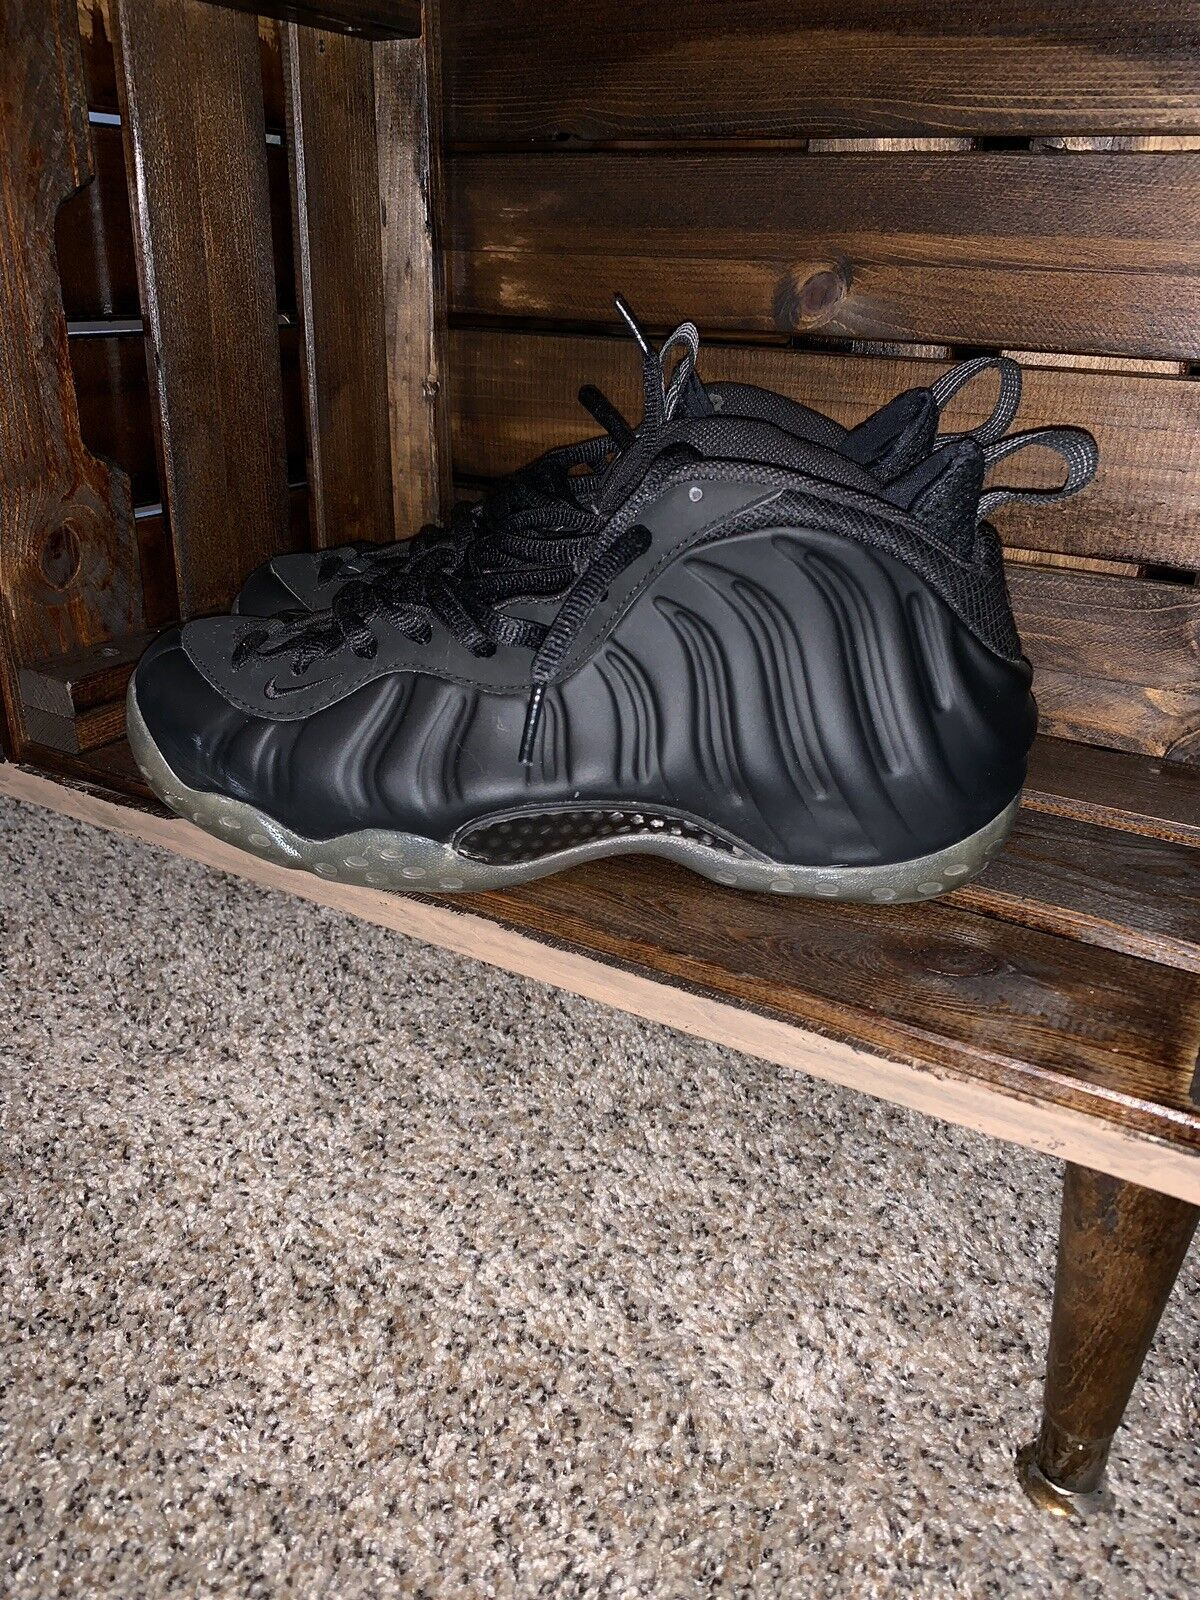 Nike Foamposite Stealth Size 8.5 Pre-Owned